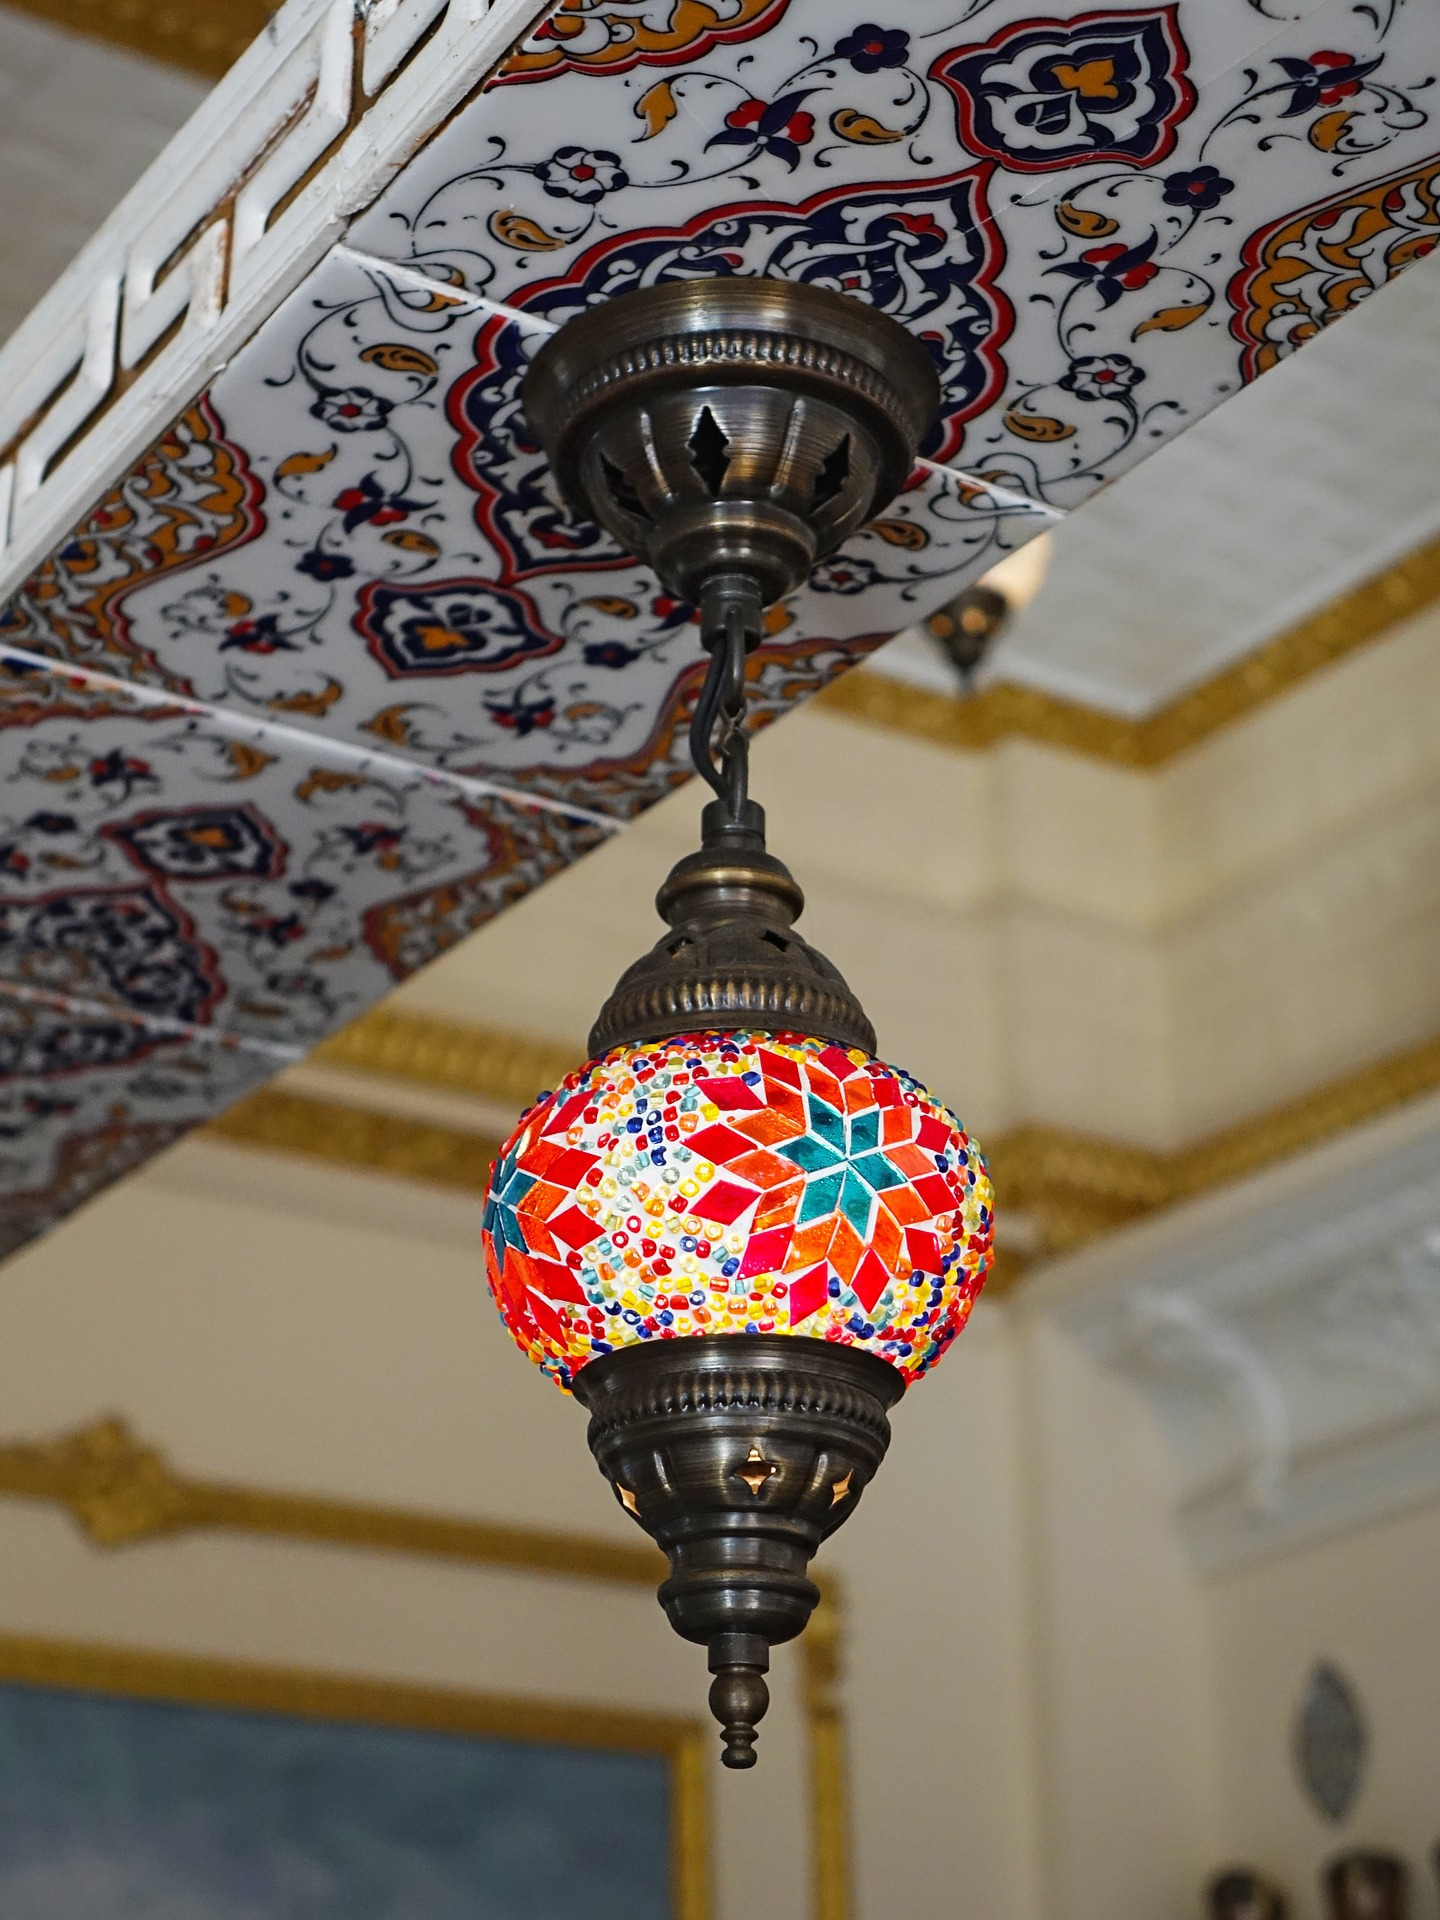 Home Decor - lamp and tiles MEDITERRANEAN